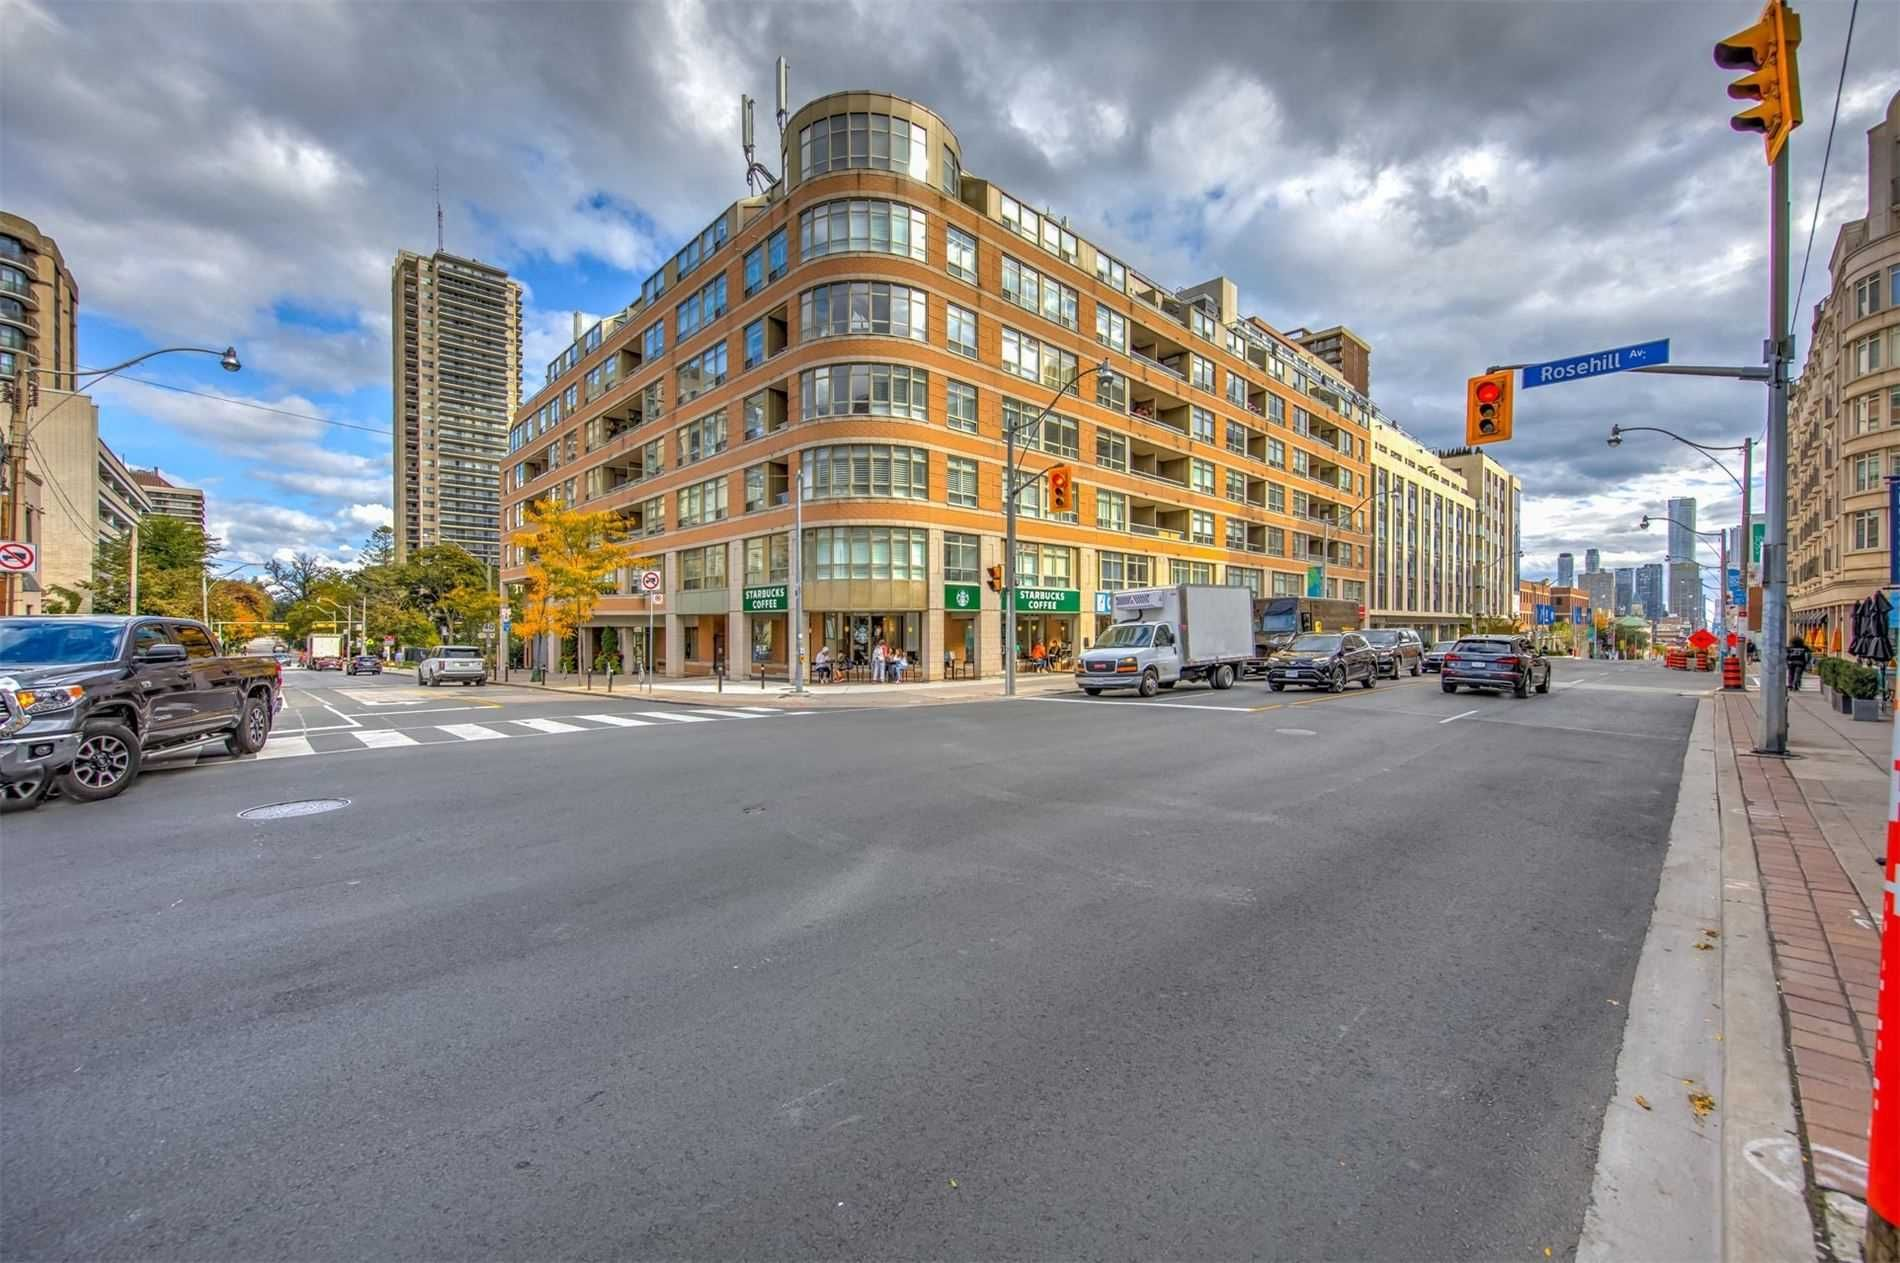 5 Rosehill Ave, unit 612 for sale in Toronto - image #1